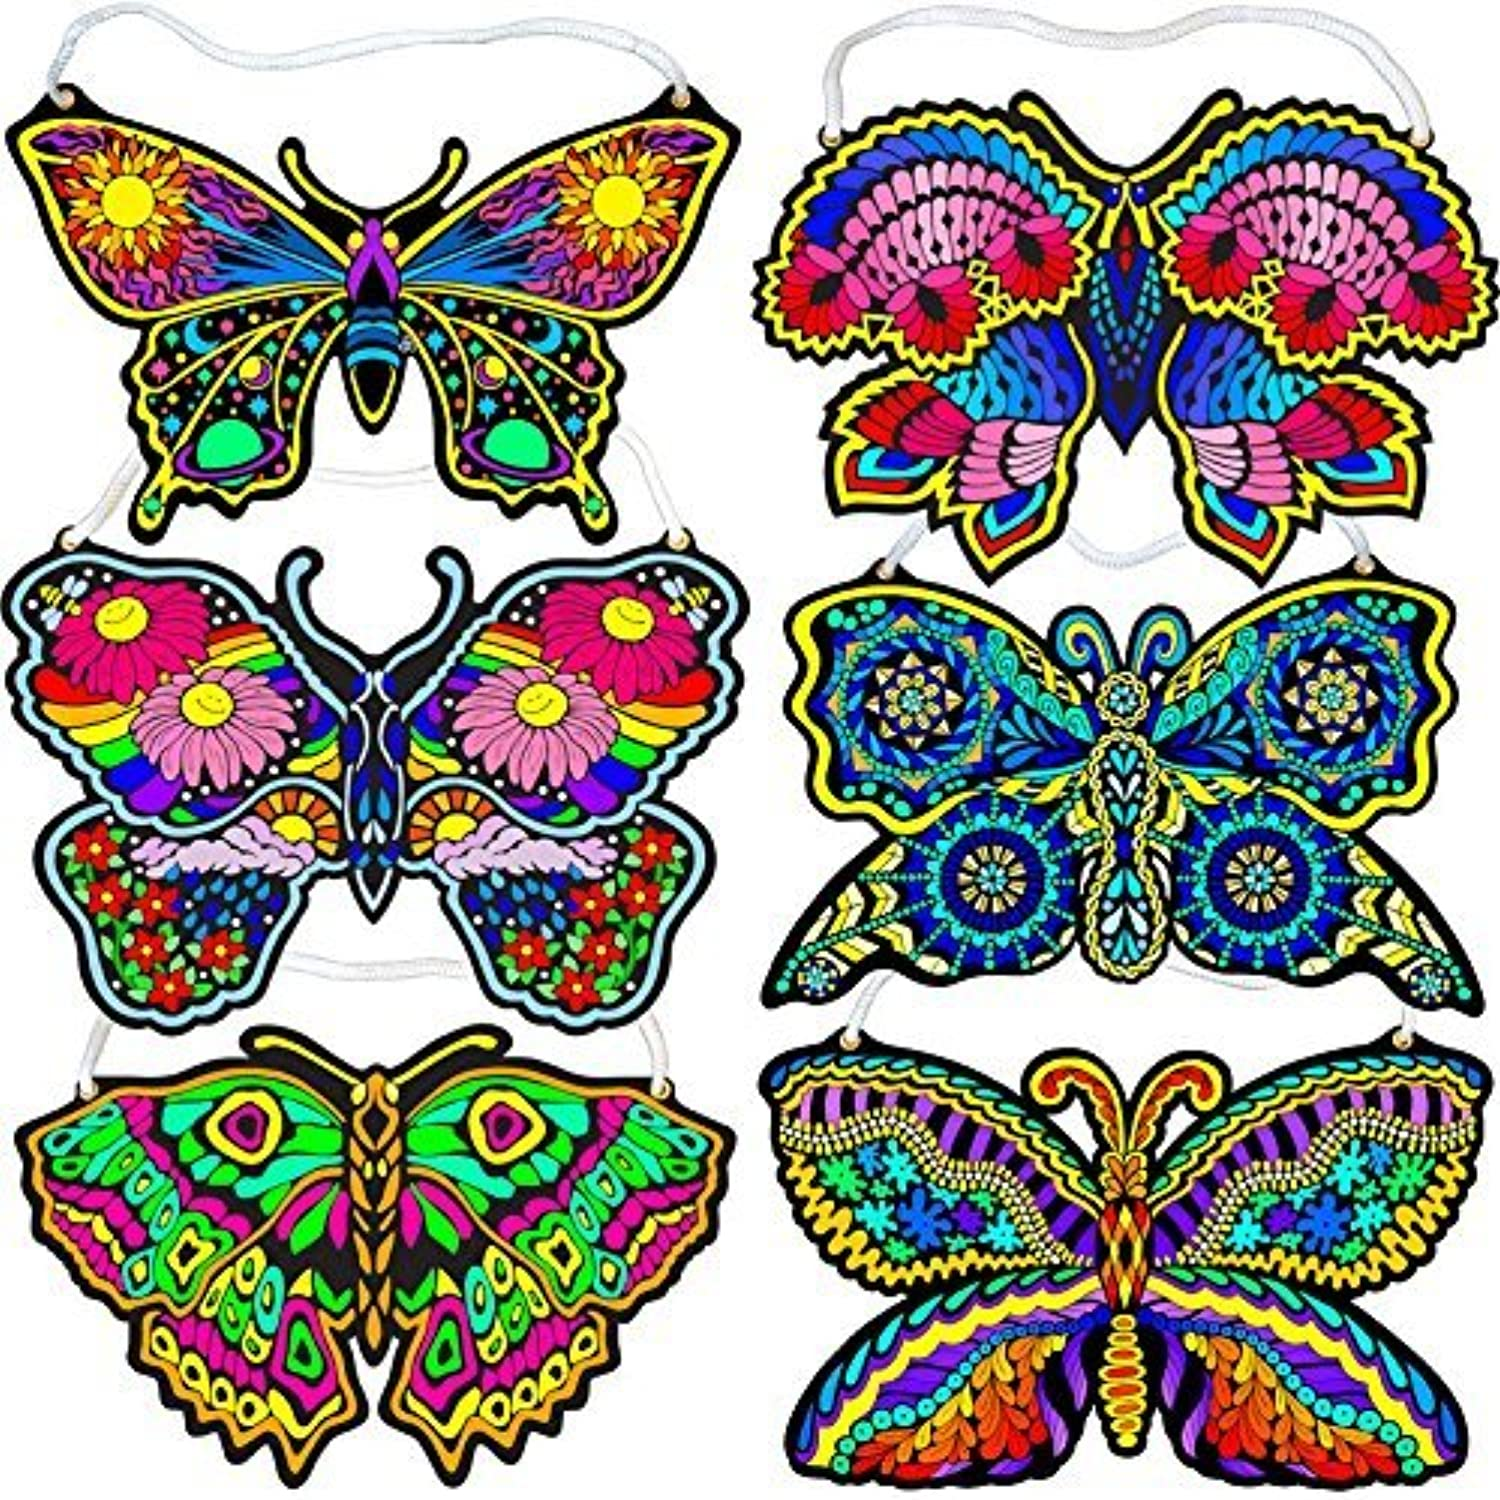 Fuzzy Velvet Hanging Butterflies (Beautiful coloring Designs) by Stuff2color